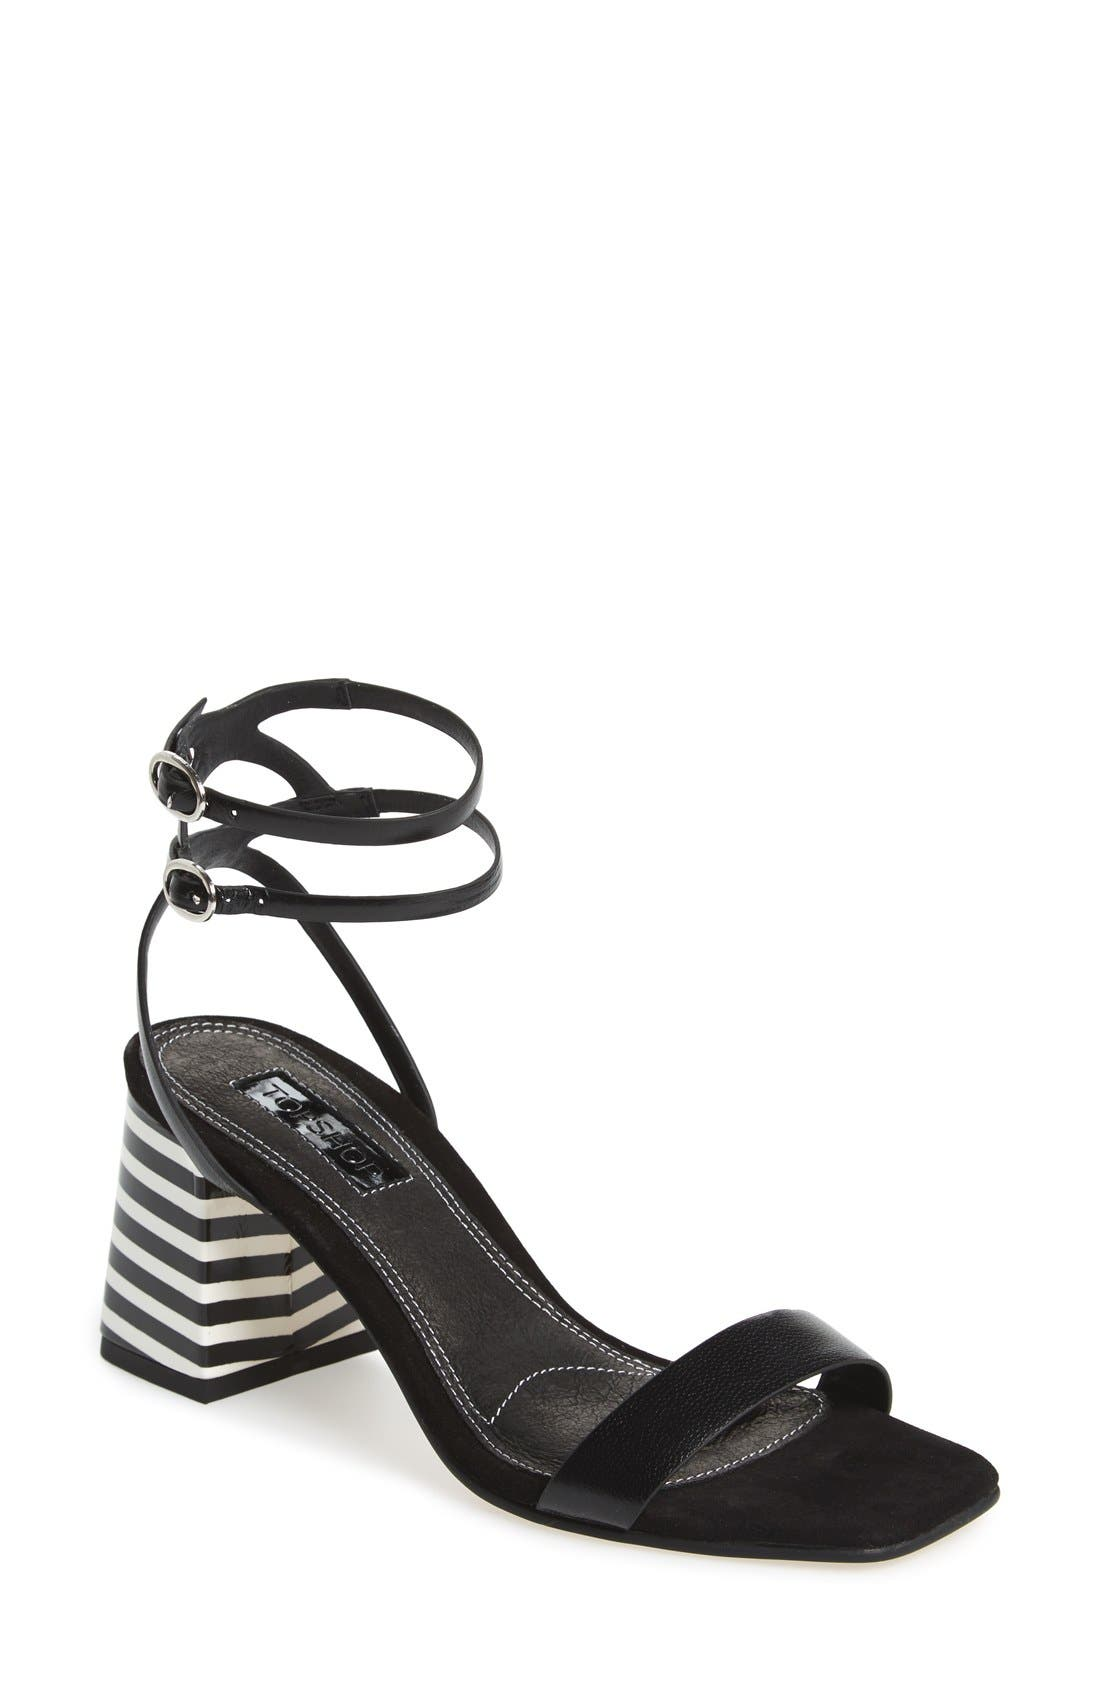 Main Image - Topshop 'Nipper' Ankle Wrap Sandal (Women)